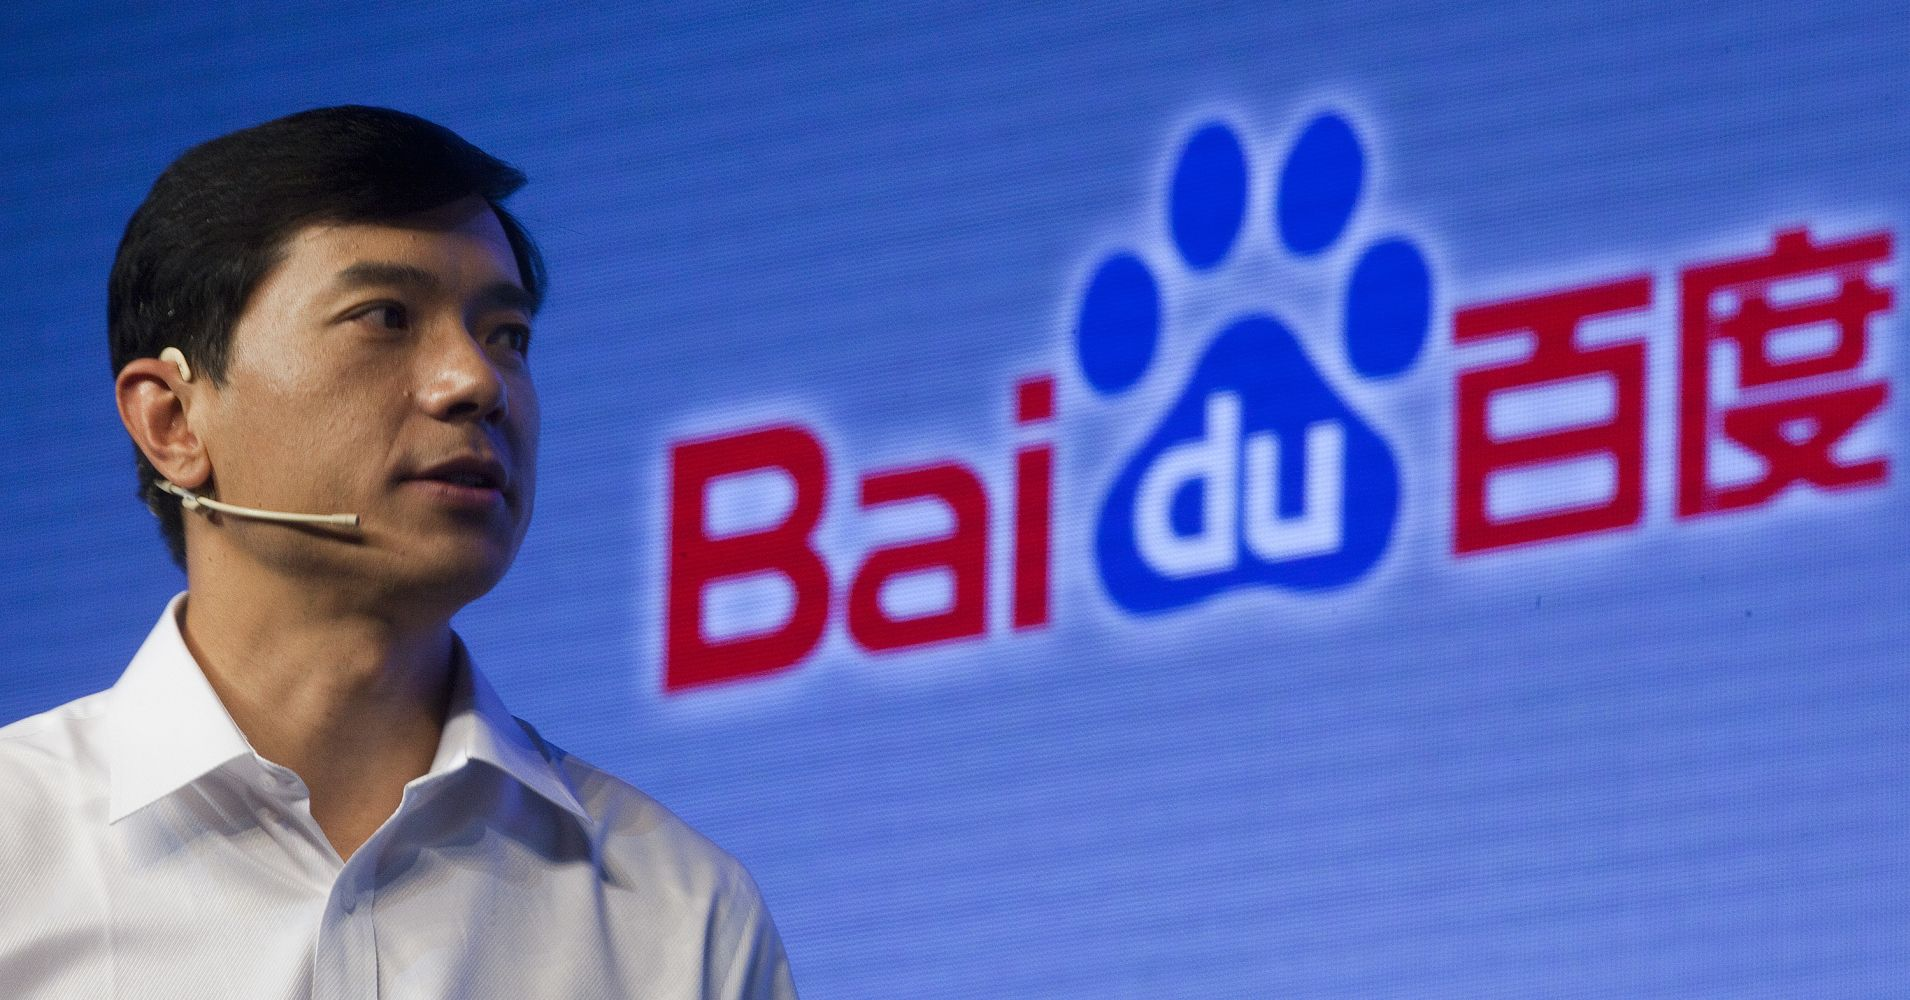 Ford and Baidu team up to test self-driving vehicles in China